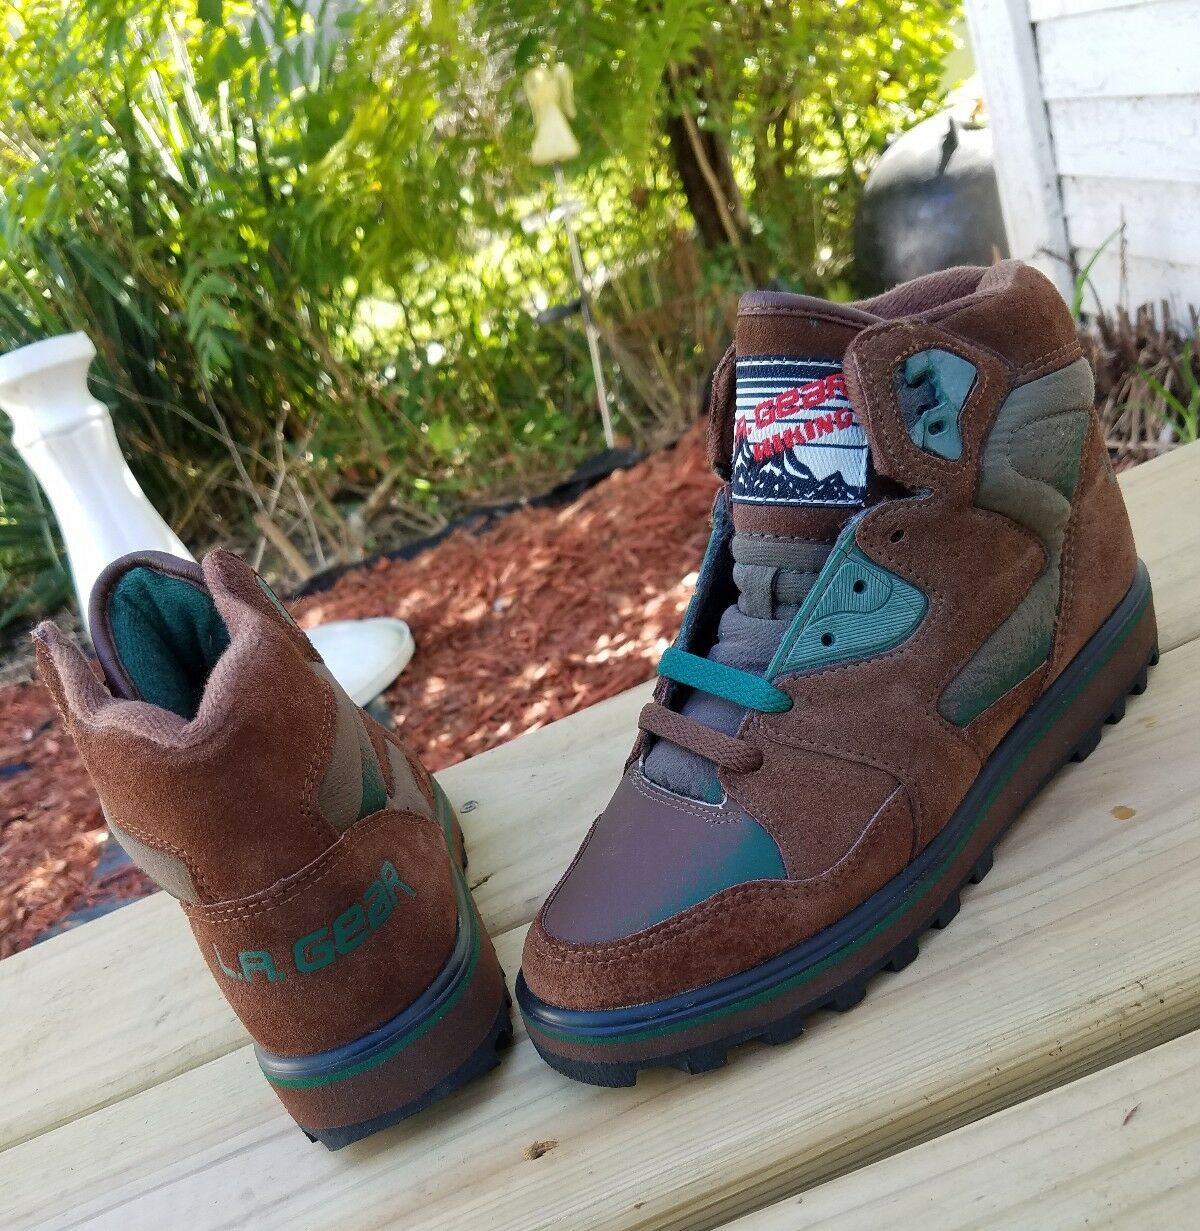 dcb72fa2ec6 RARE Gear Hiking Boots SIZE Suede Vintage shoes womens mens 6 5 nike jordan  LA 7 nrzdje7857-Athletic Shoes